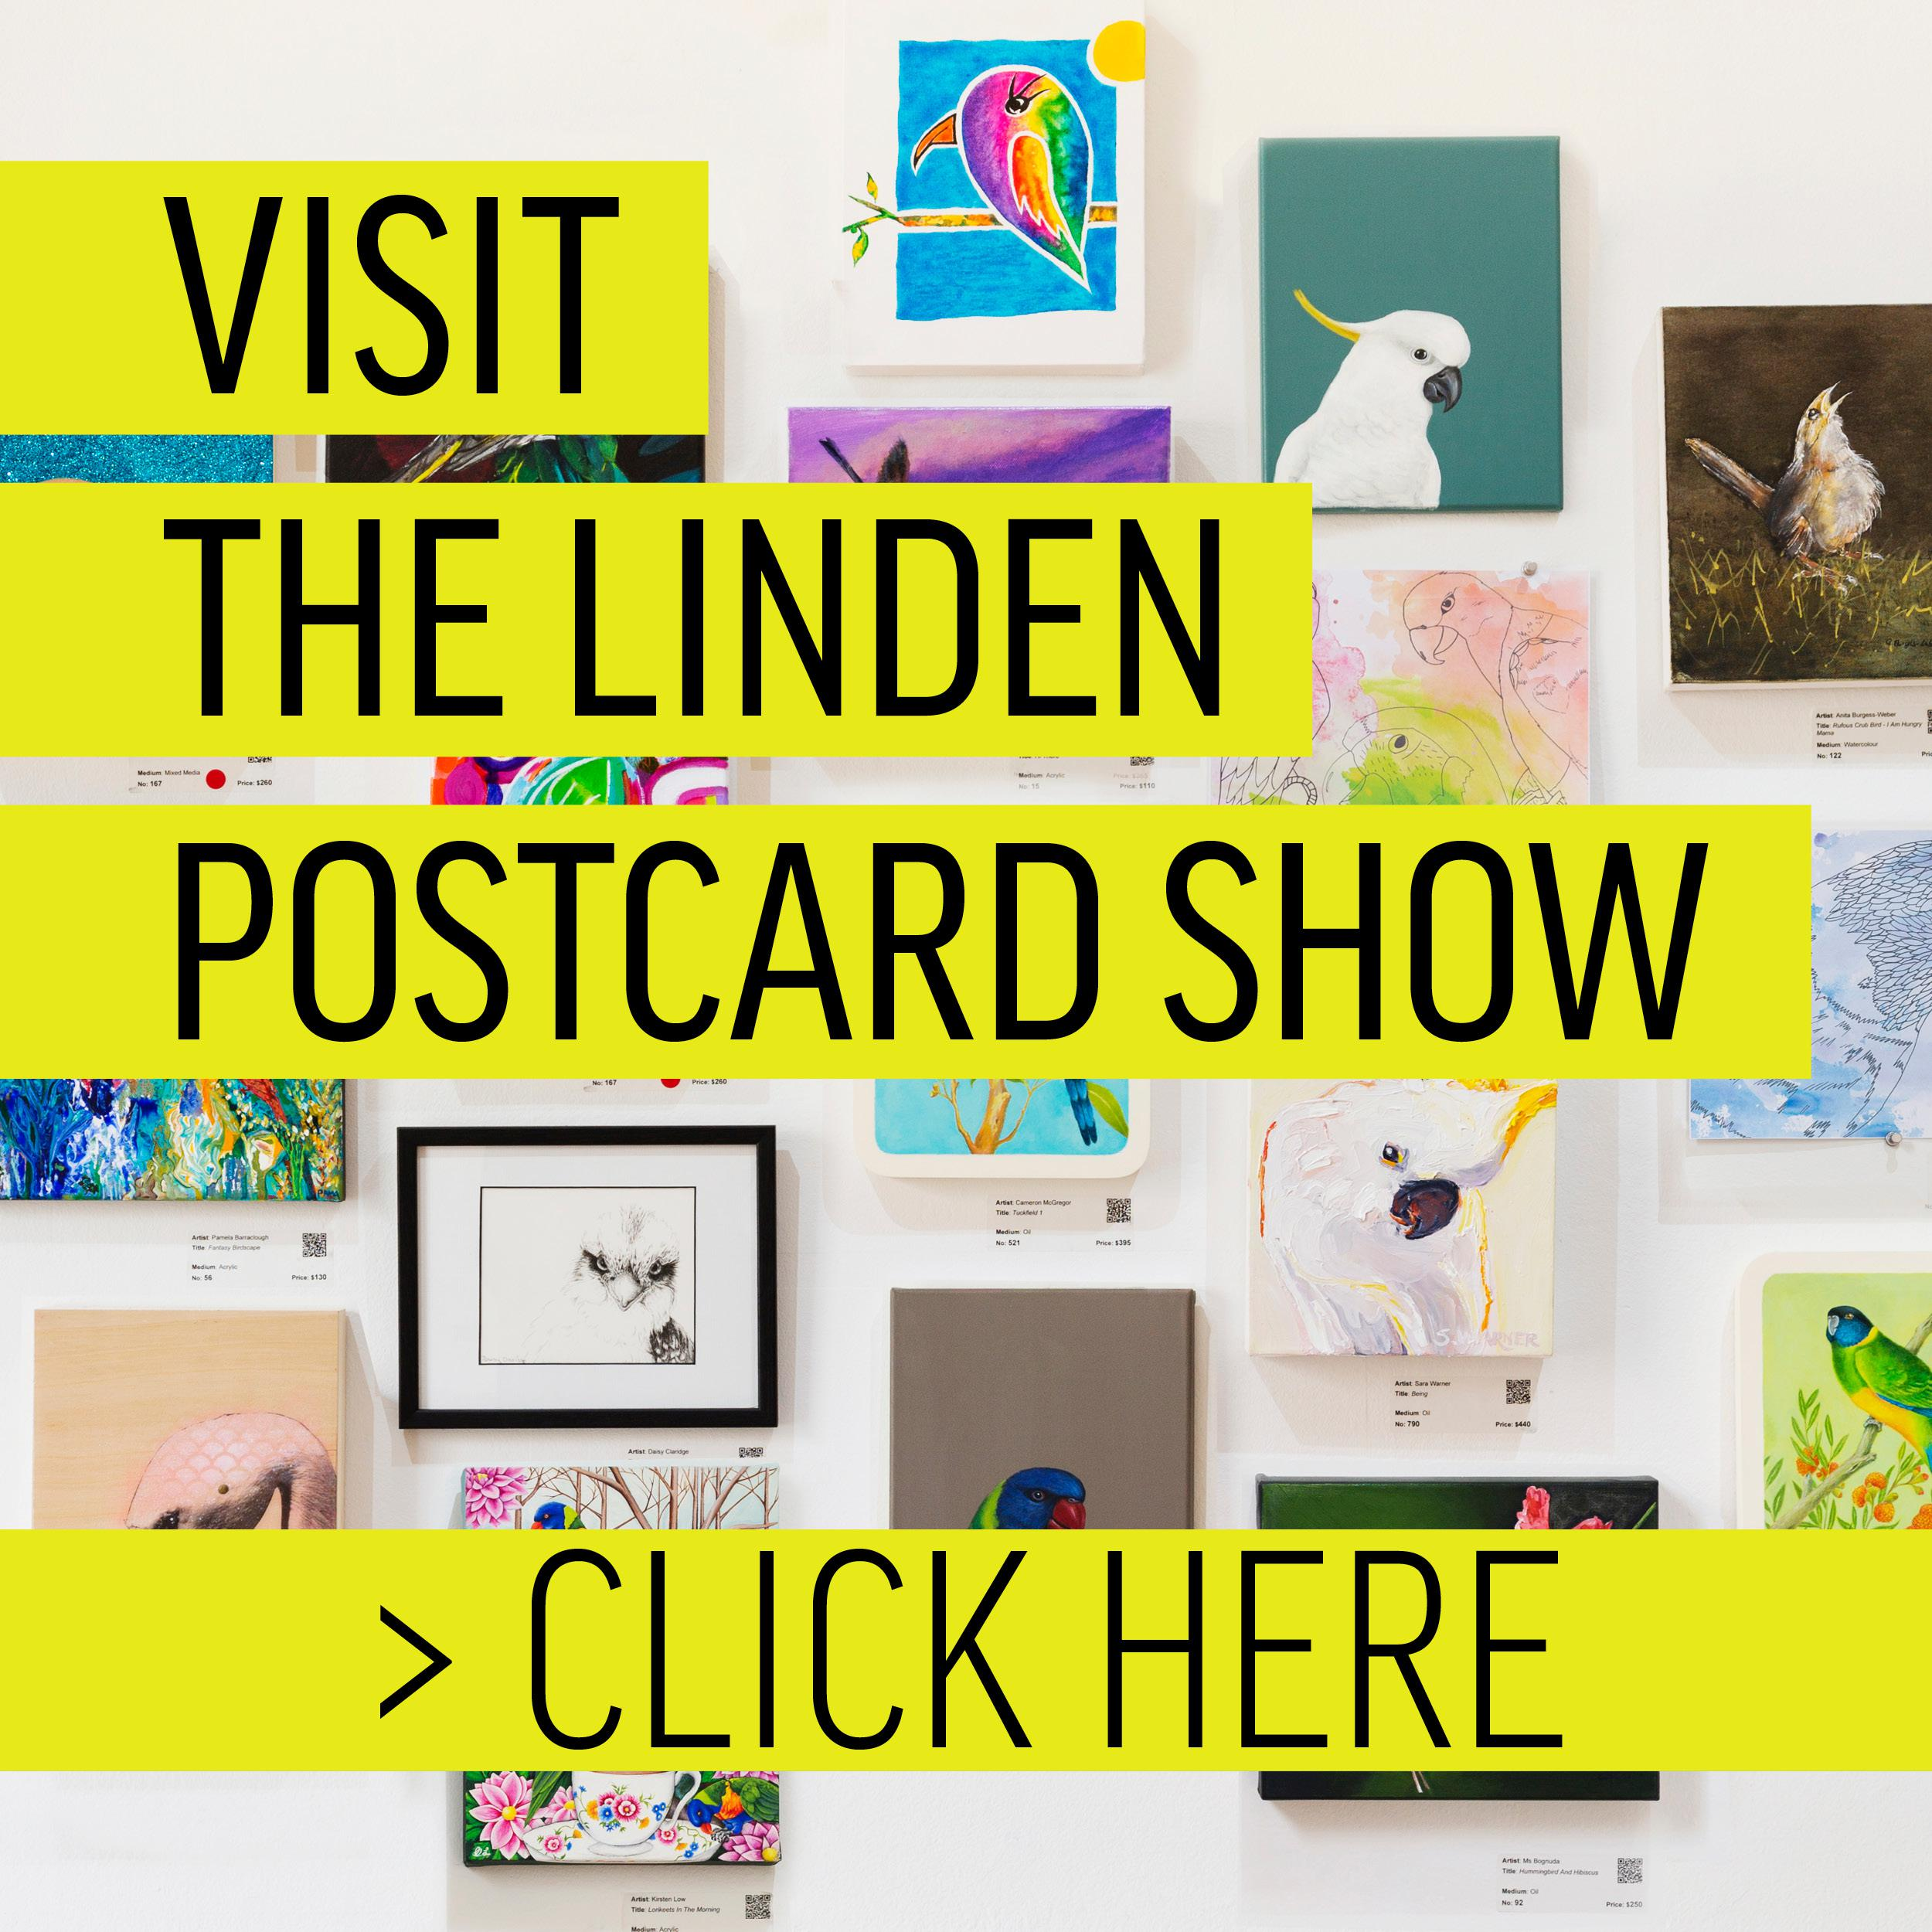 Visit the Linden Postcard Show